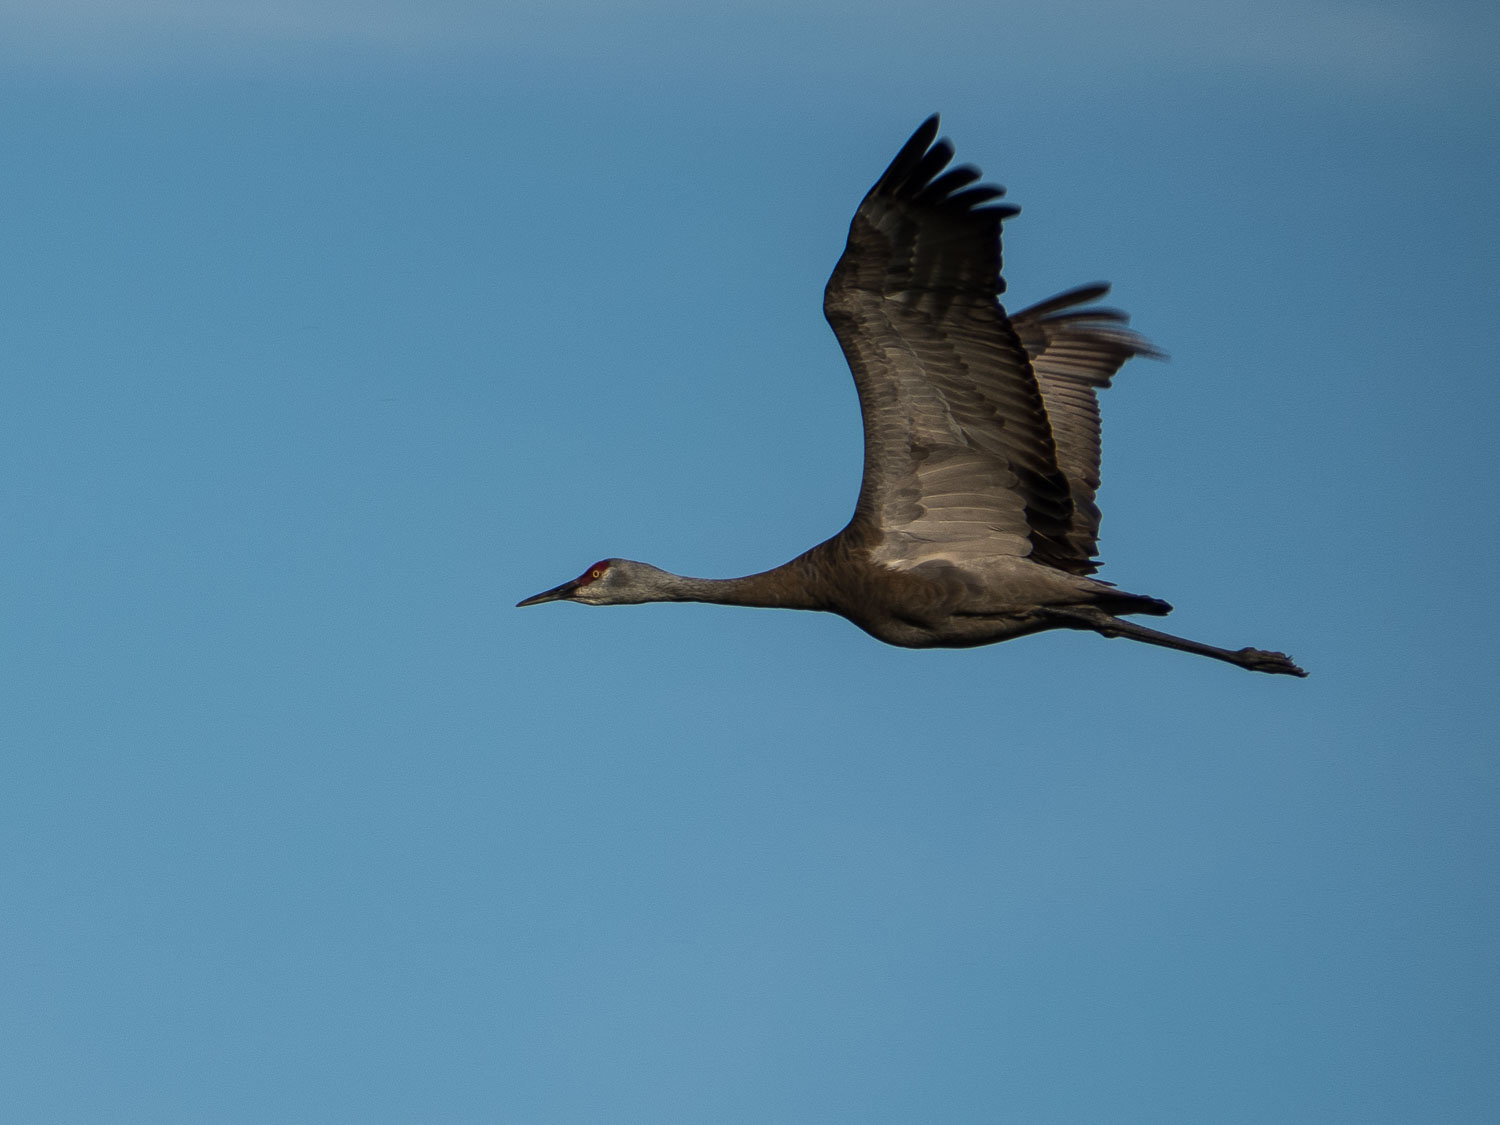 crane in flight - micro four-thirds for wildlife